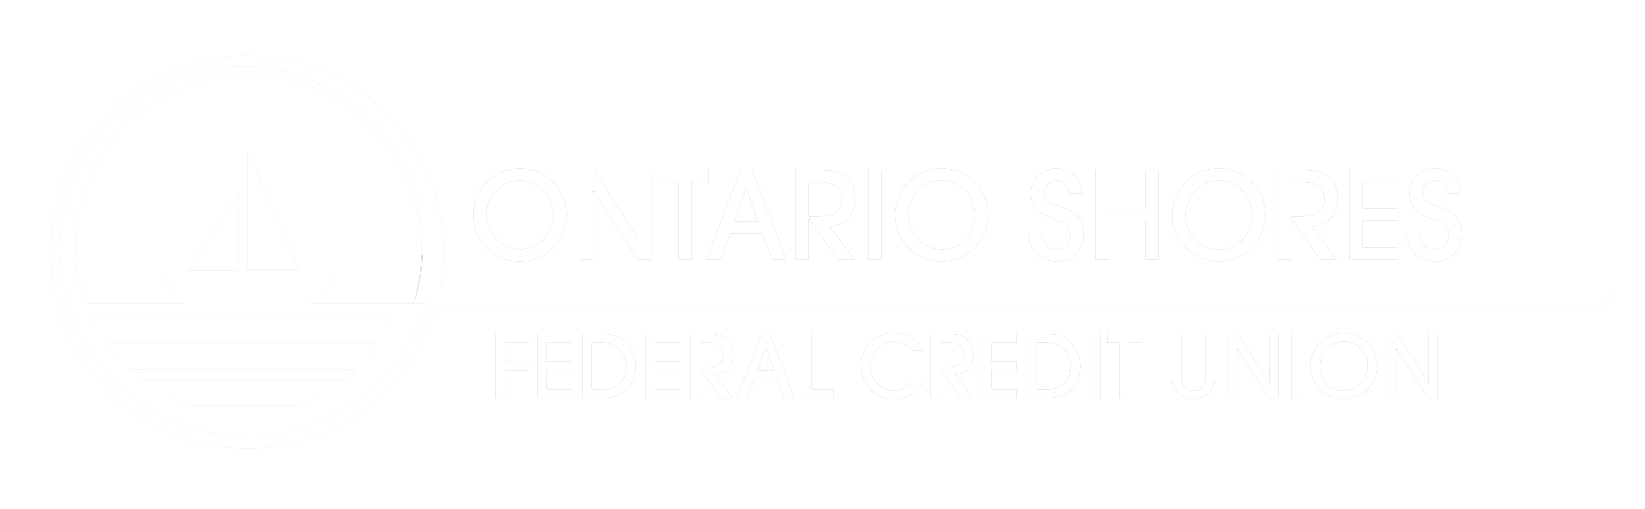 Ontario Shores Federal Credit Union